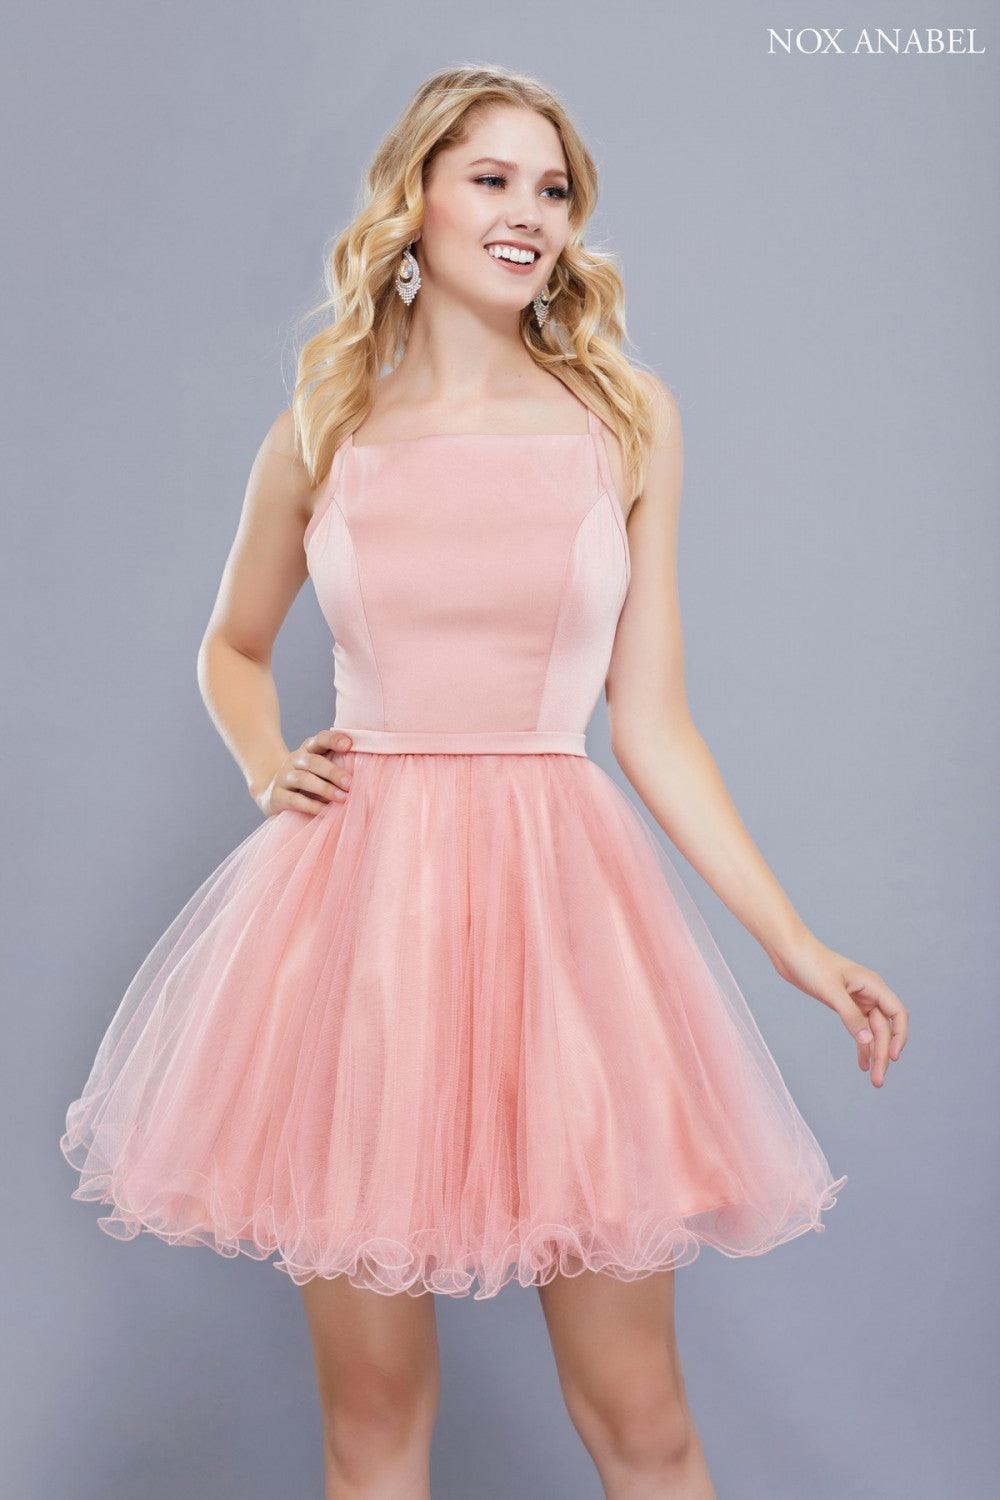 Short Sleeveless Tulle Formal Homecoming Prom Dress - The Dress Outlet Rose